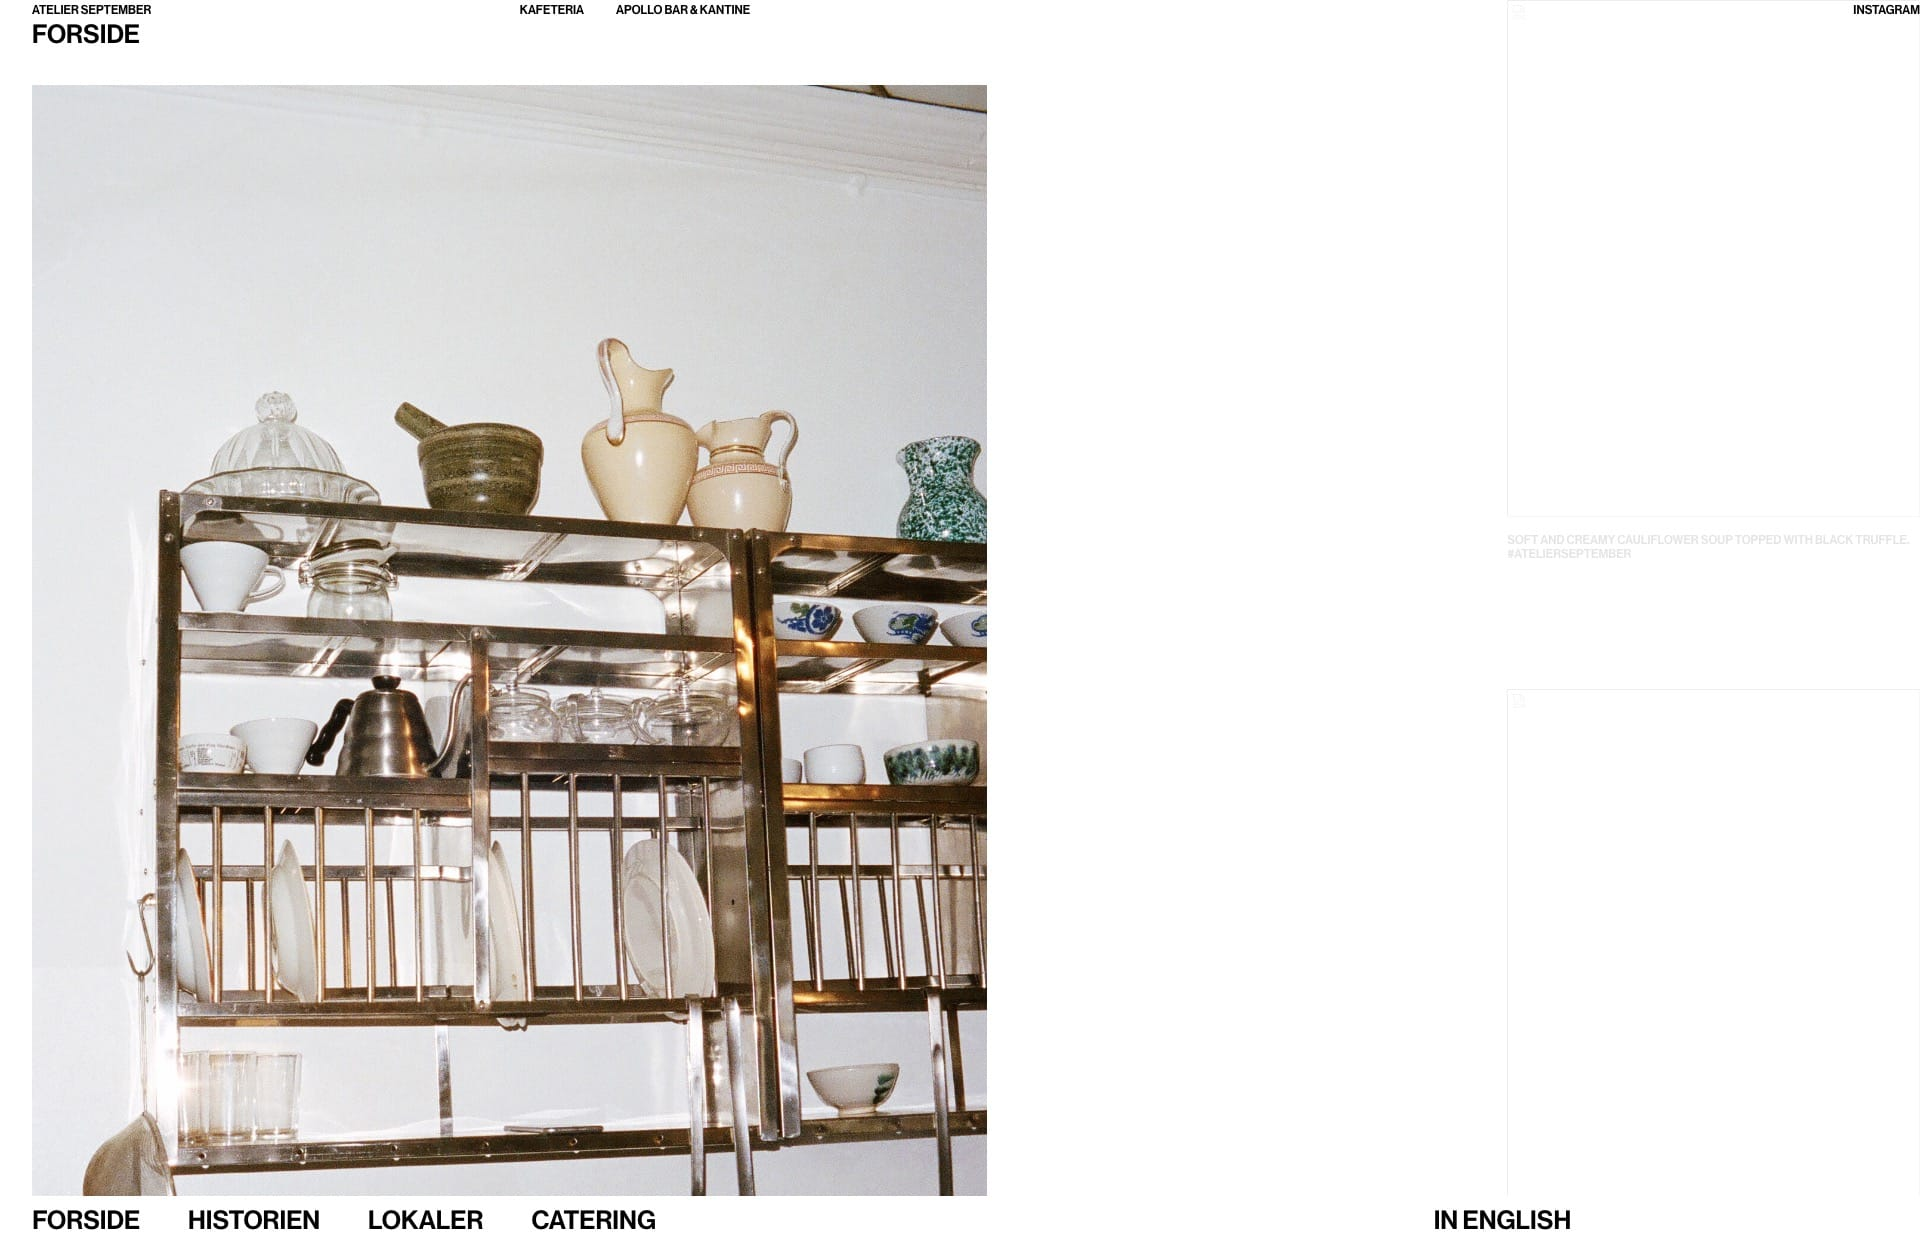 Screenshot of the website Atelier September, featured on The Gallery, a curated collection of minimal websites